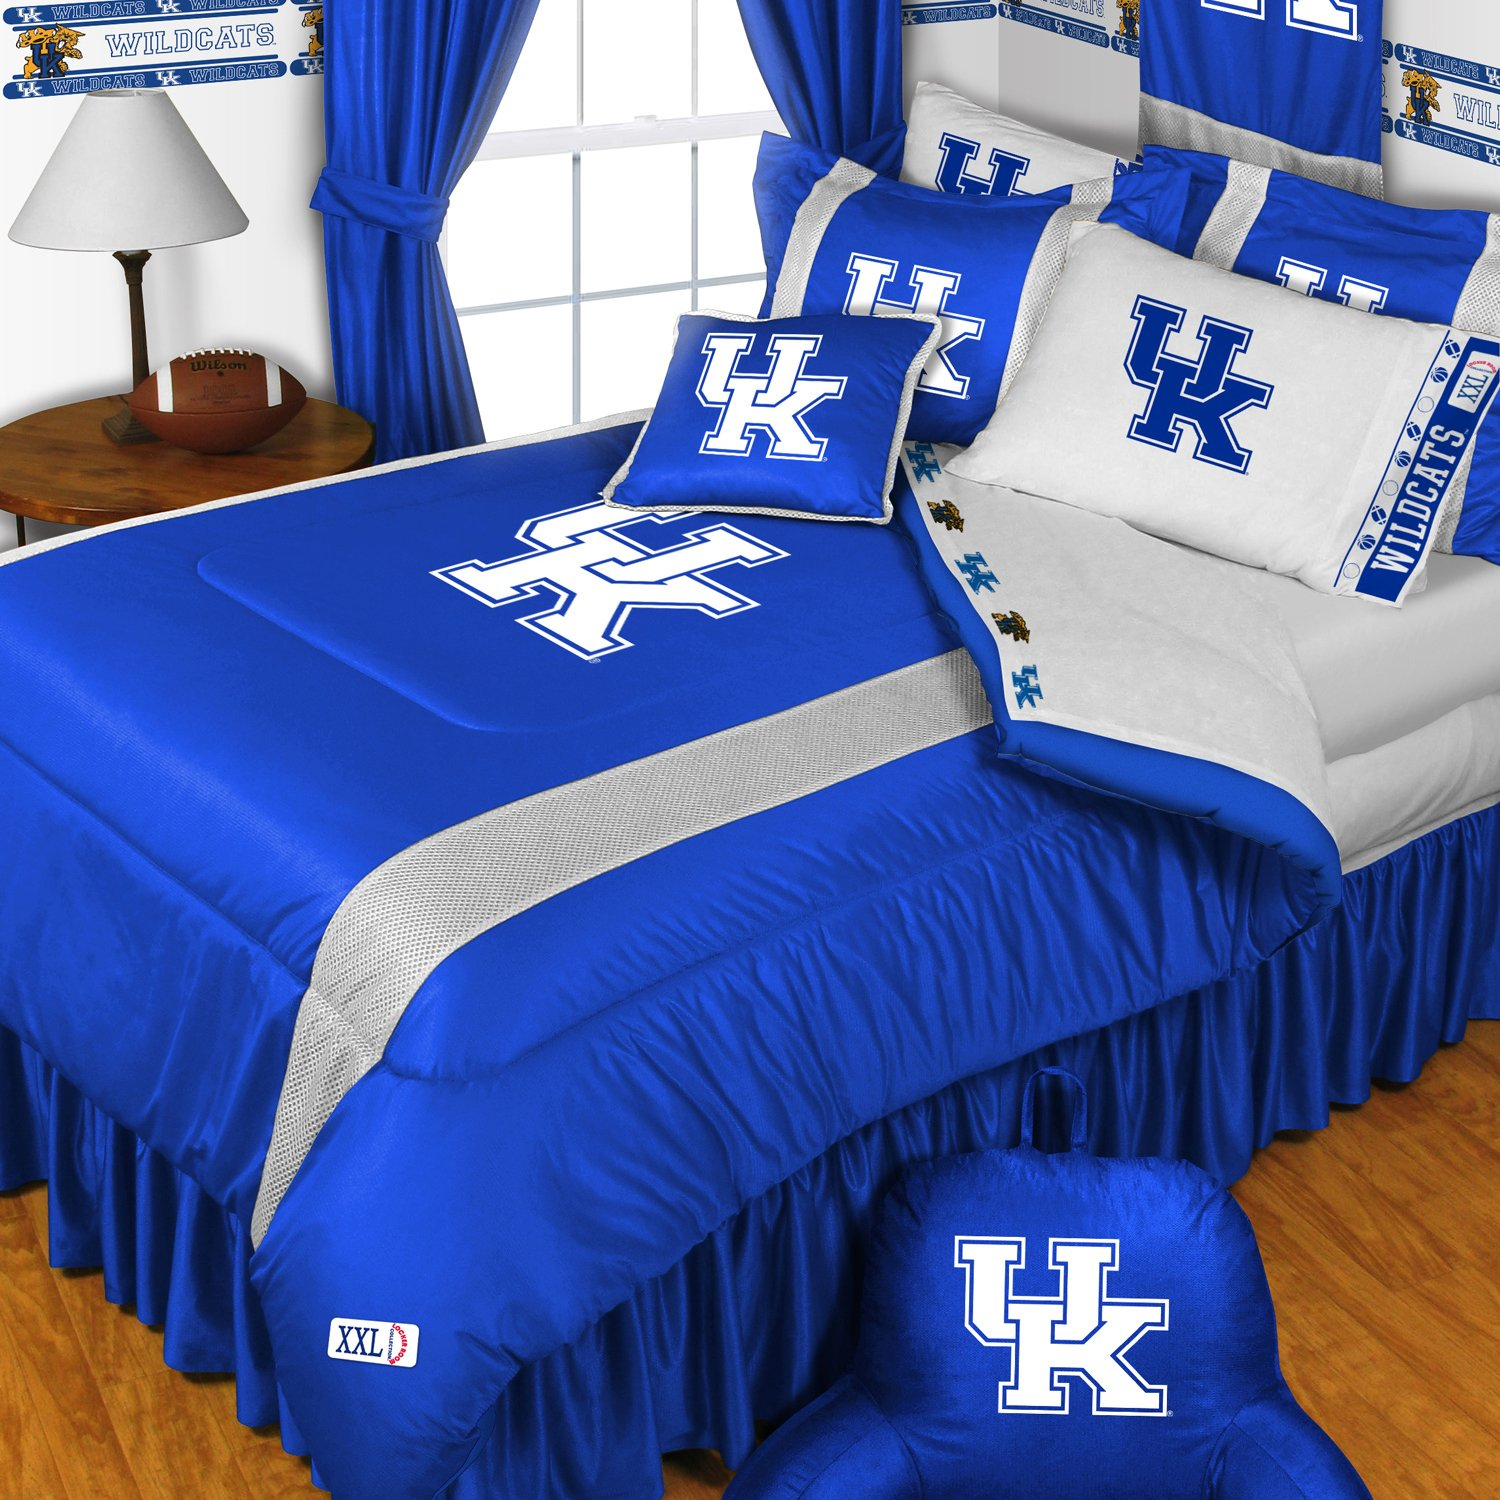 NCAA Kentucky Wildcats - 5pc BED IN A BAG - Queen Bedding Set by Store51 (Image #1)